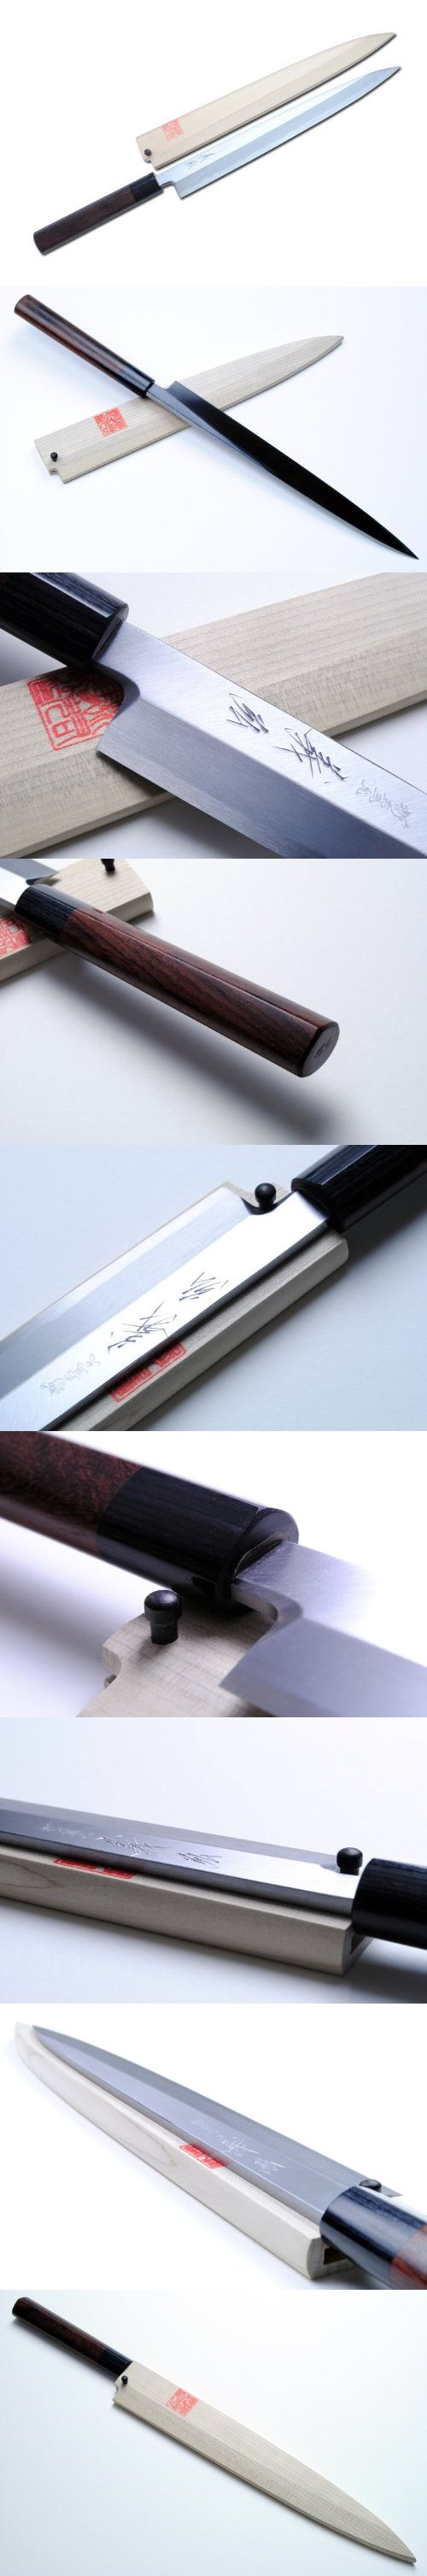 23 best knifes images on pinterest knifes kitchen knives and yoshihiro shiroko kasumi yanagi sashimi knife shitan handle 10 5 270mm made in japan kasumi means mist in japanese the border of the blade on a